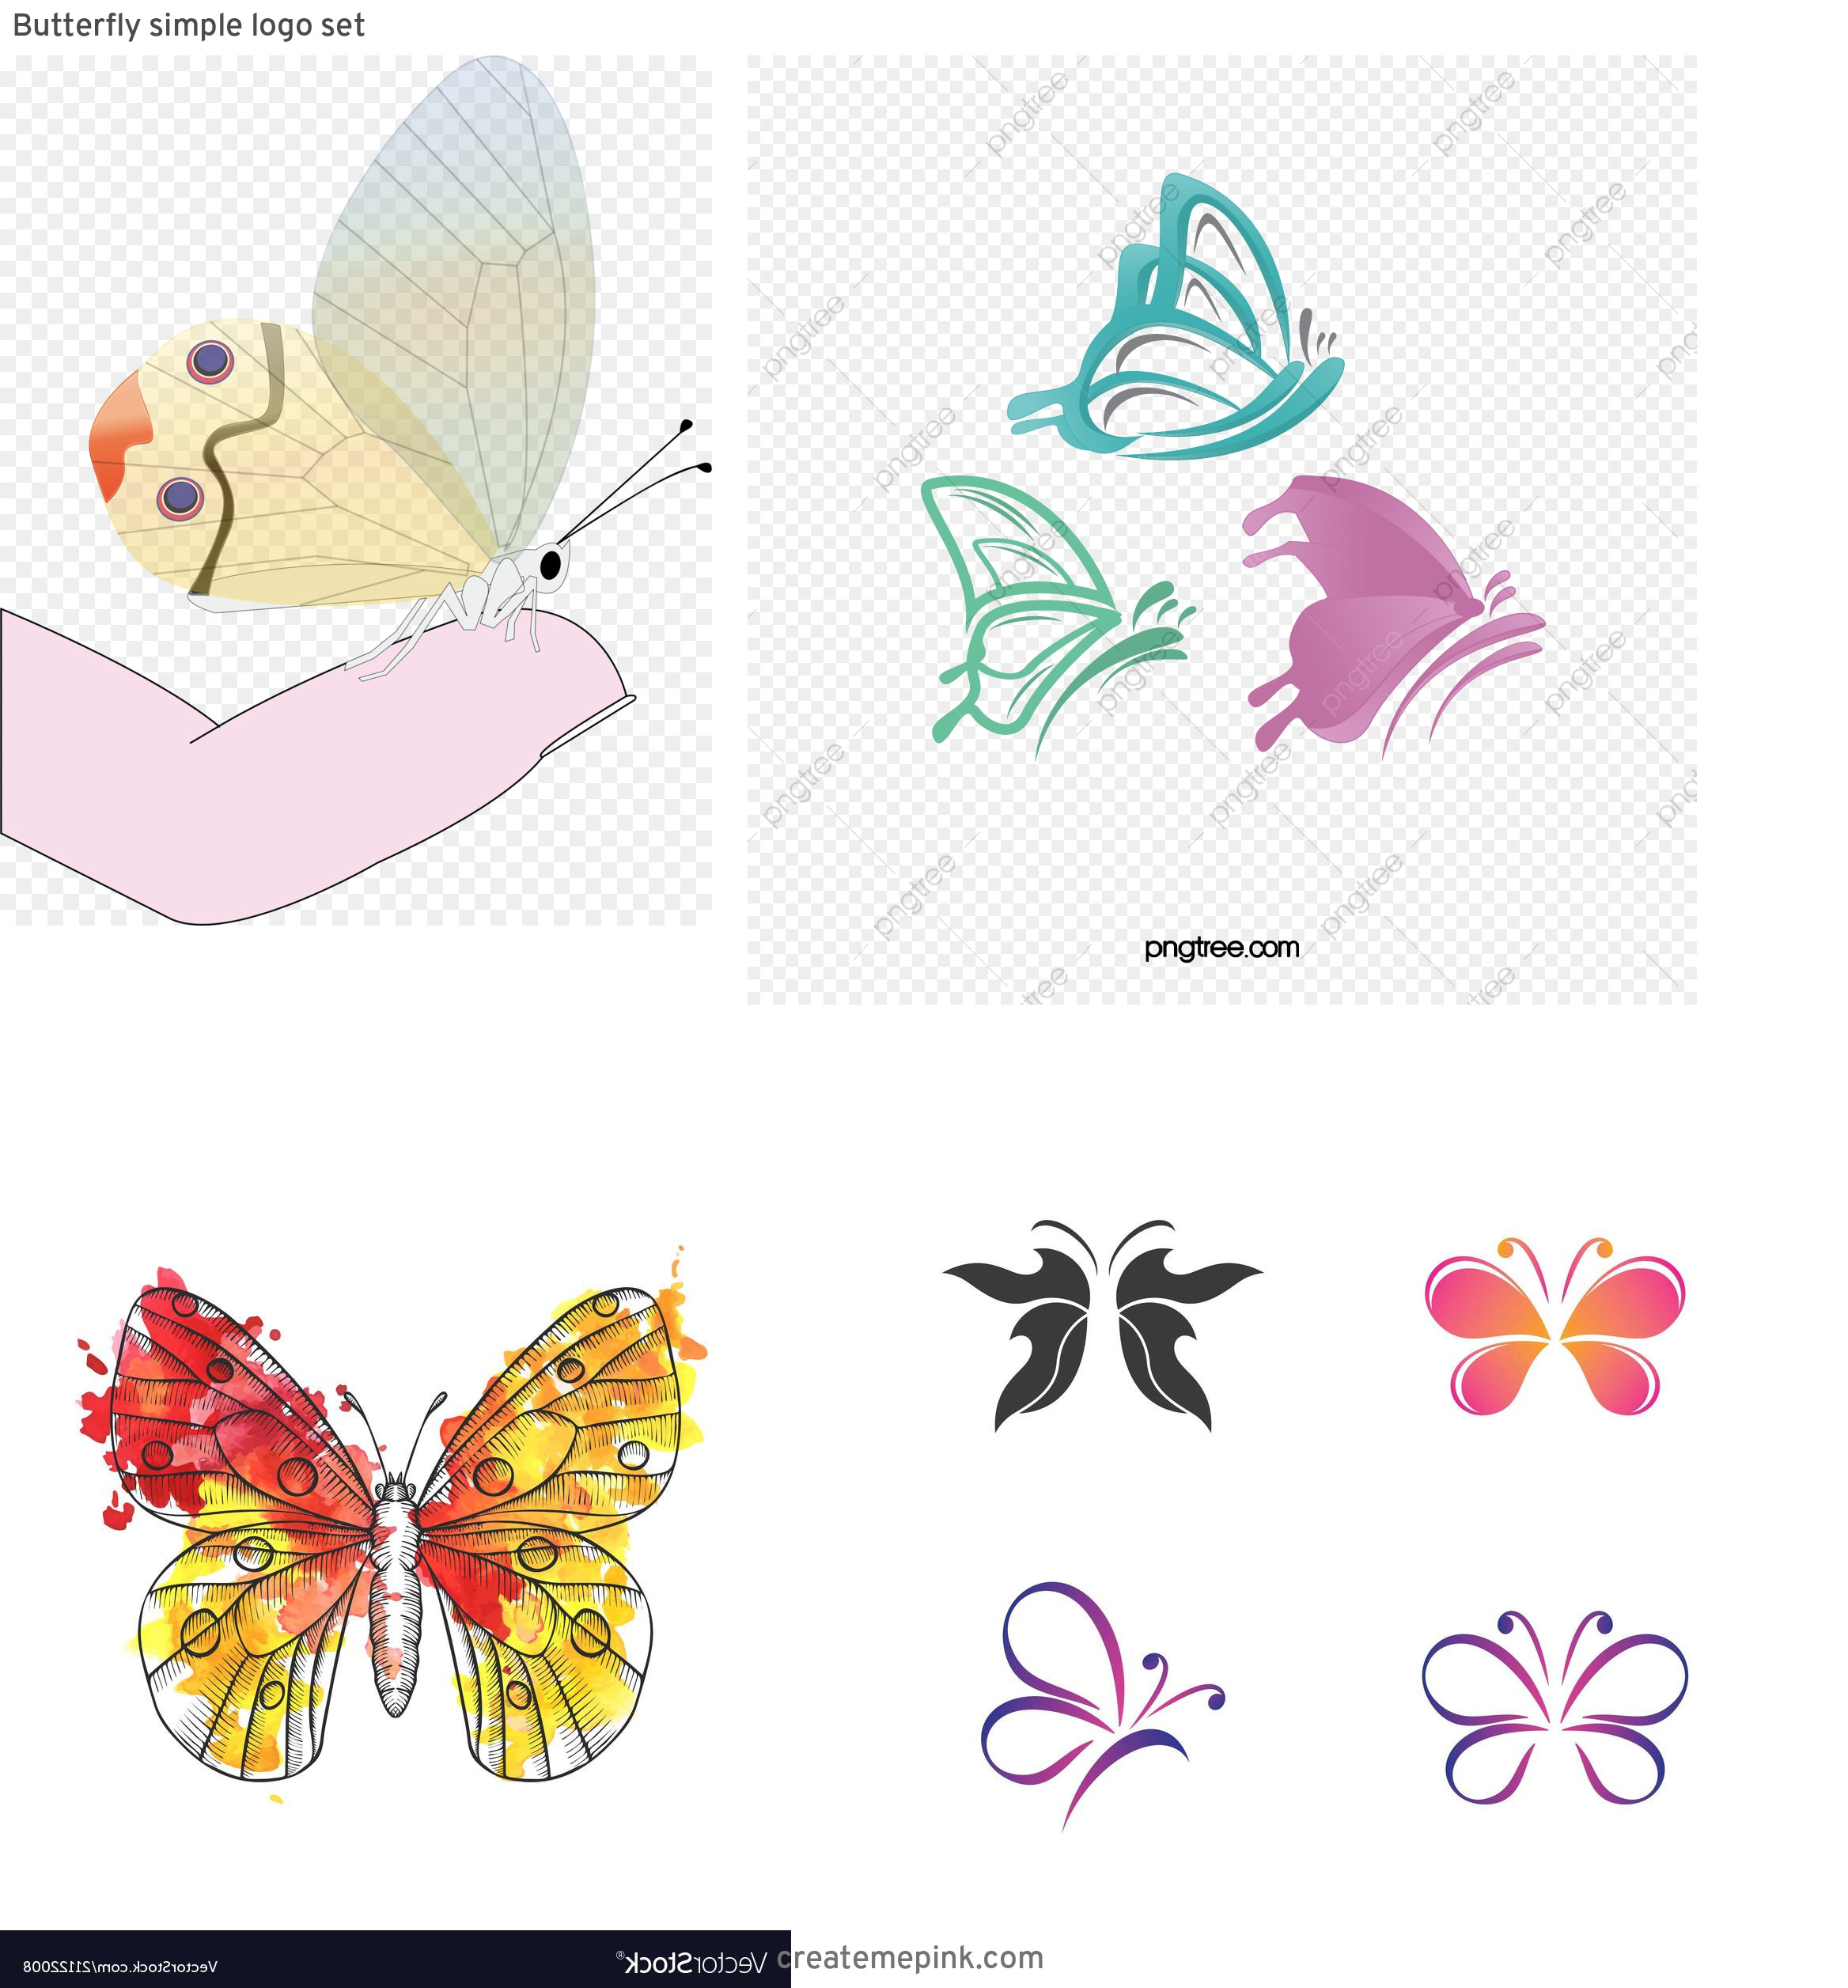 Butterfly Vector Graphics Clip Art: Butterfly Simple Logo Set